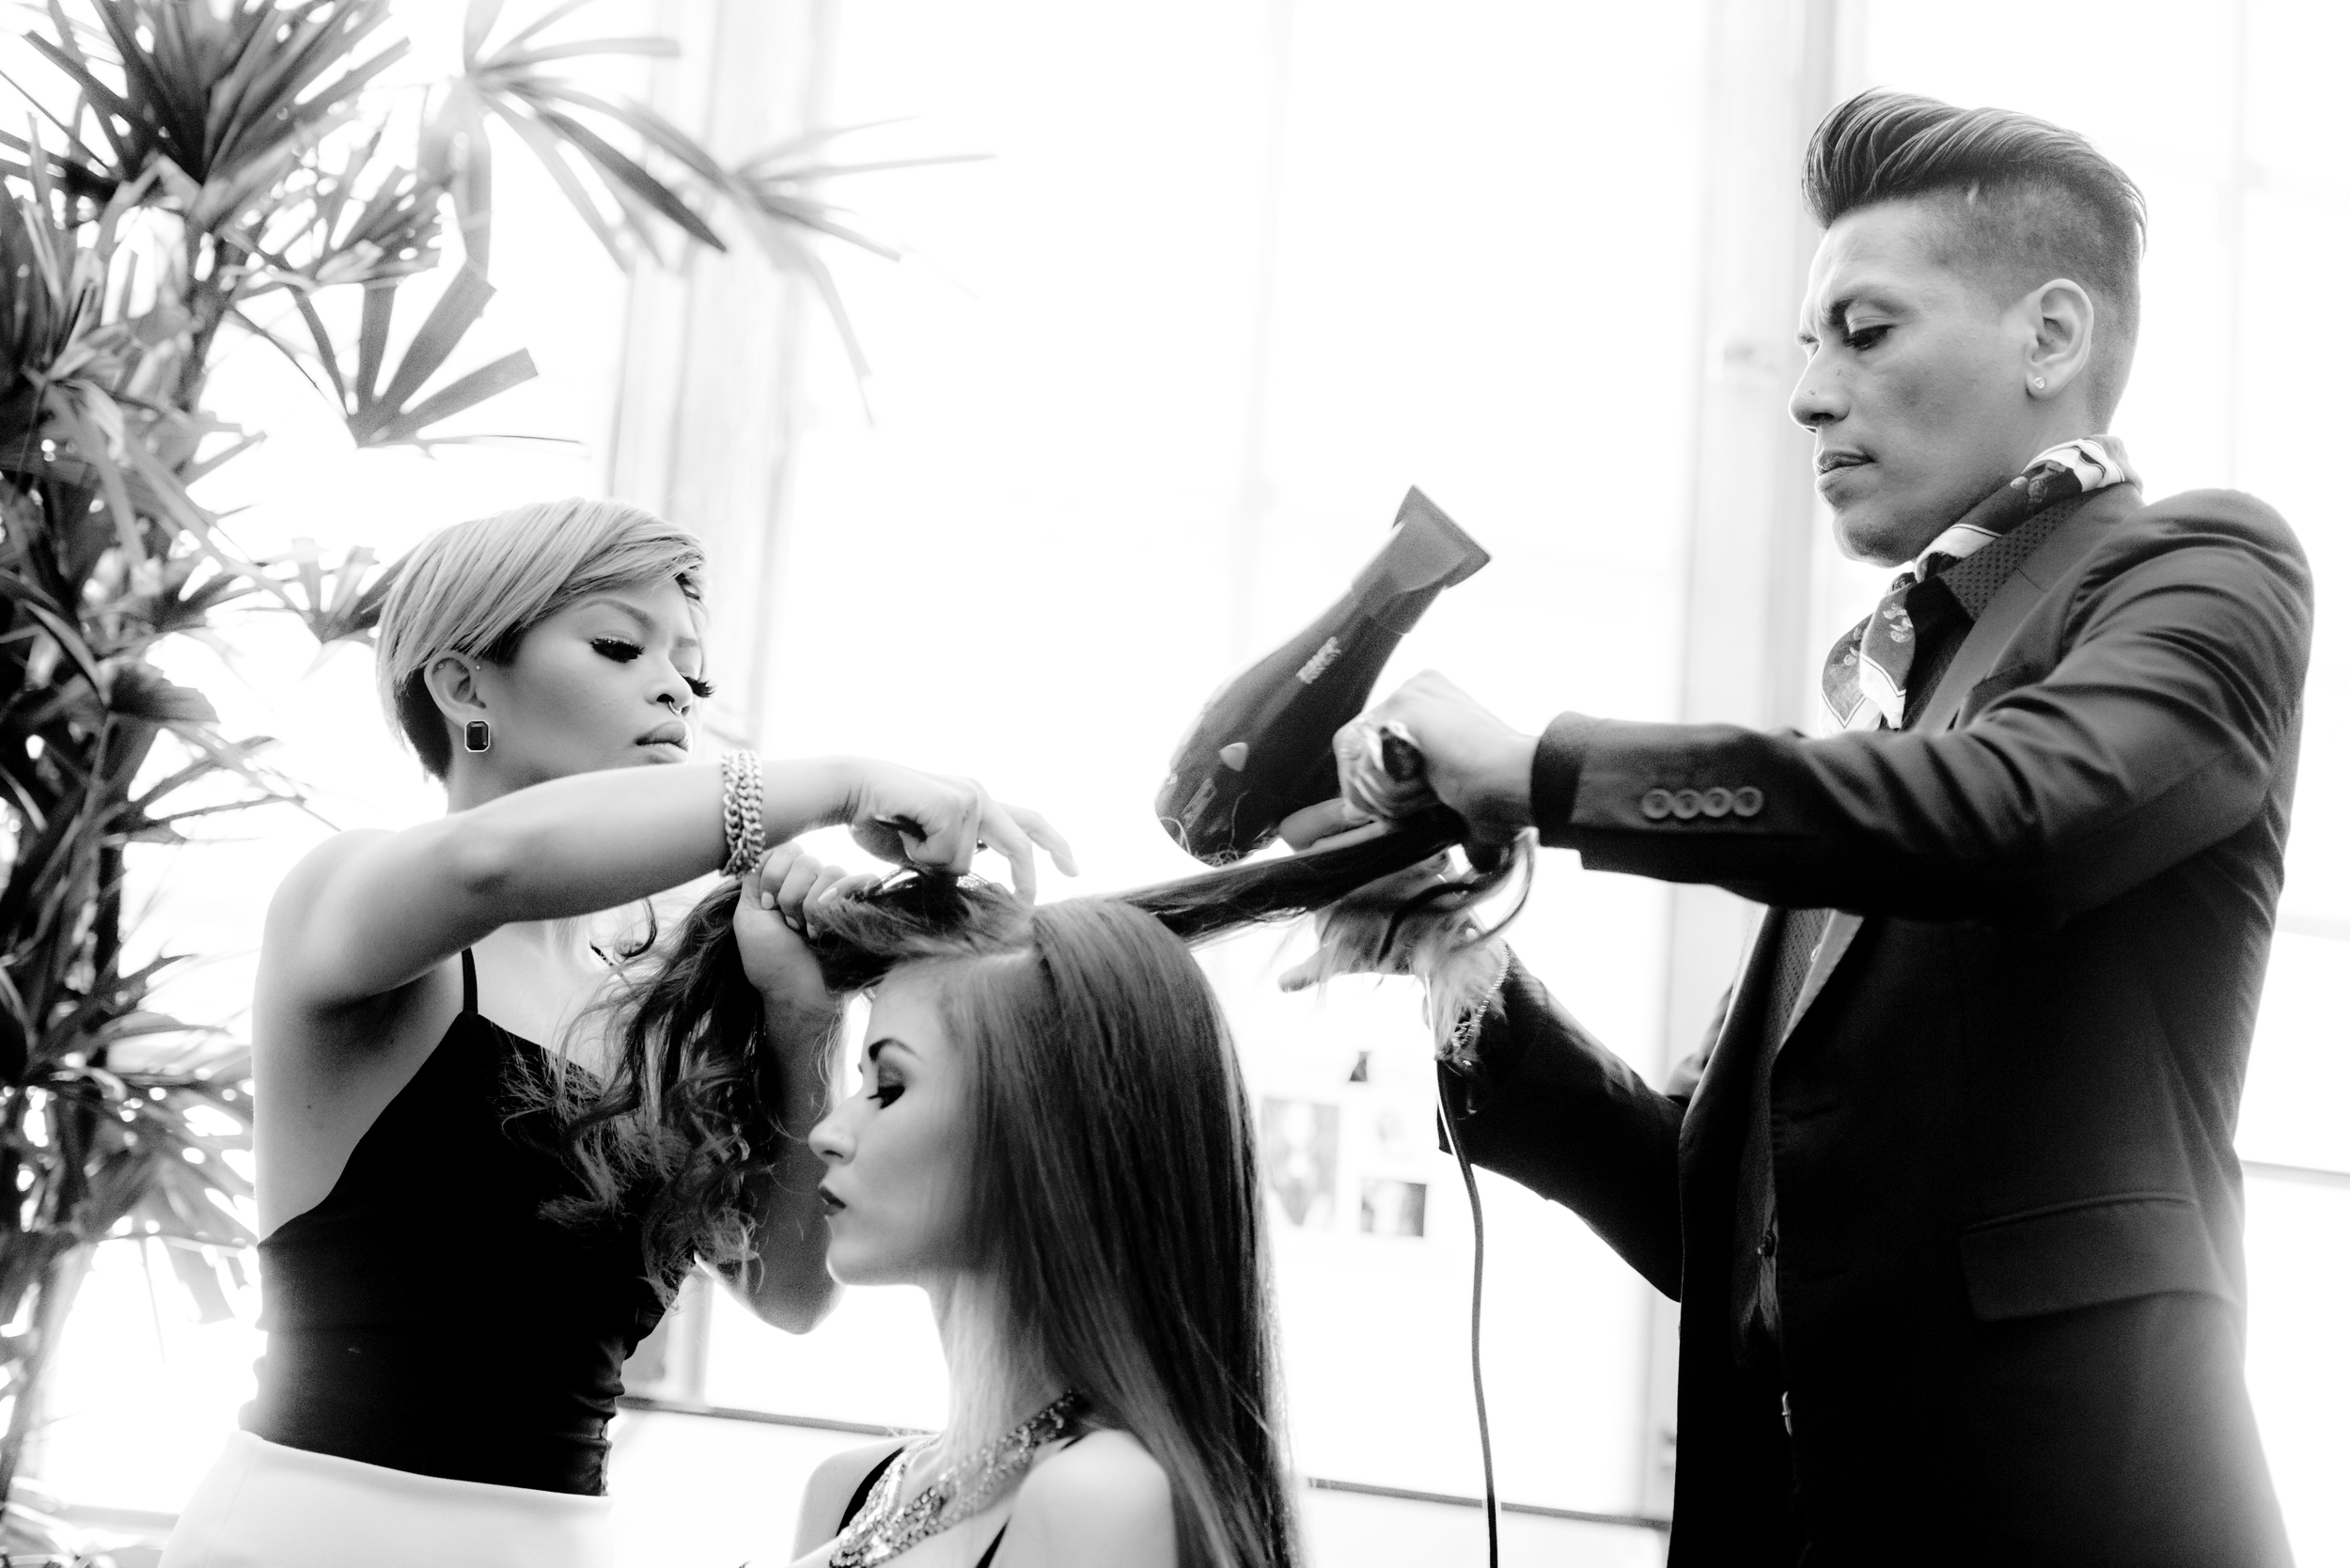 ORIBE ON THE ROAD | SAN FRANCISCO   Hair: Kien Hoang, Ronnie Stam, Louis Orozco | Oribe Hair Care  Photography: Khiem Hoang